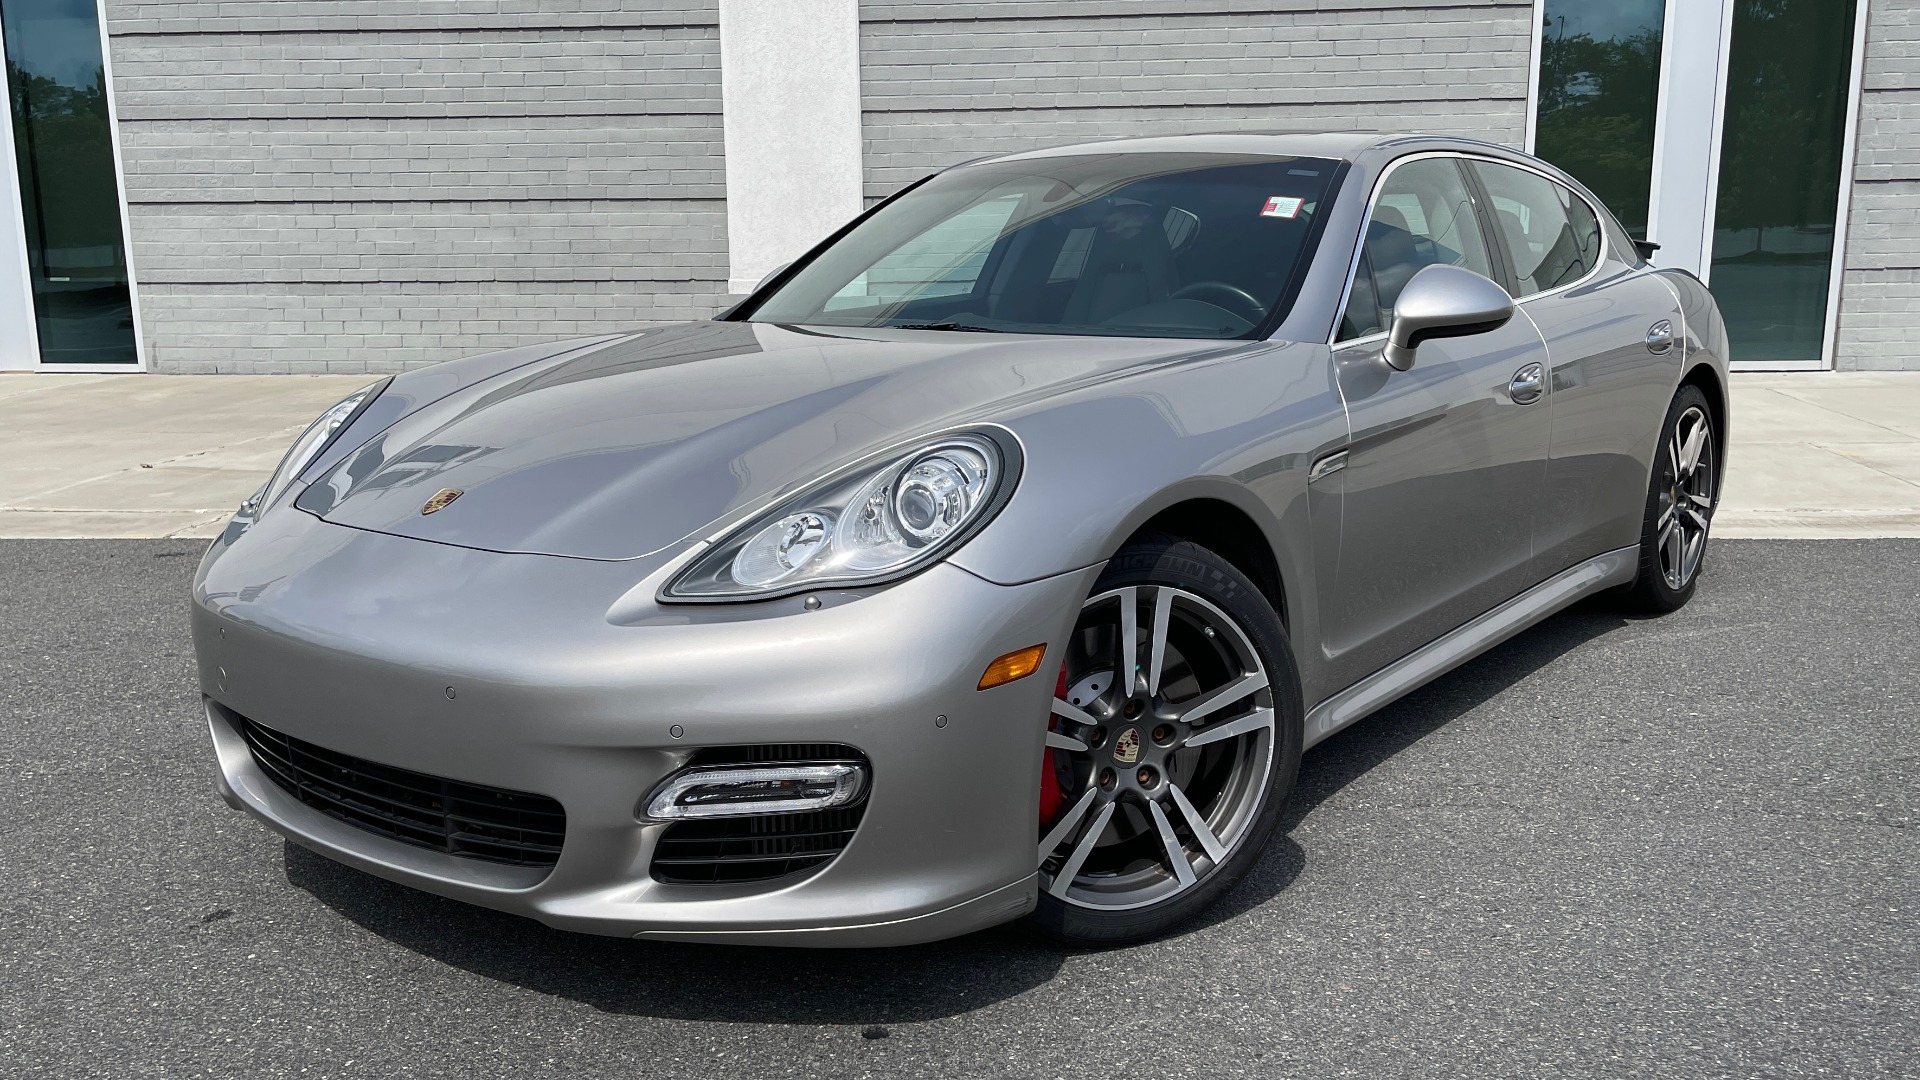 Used 2010 Porsche PANAMERA 4DR HB TURBO / SPORT CHRONO / BOSE / AUTO CLIMATE CONTROL for sale $42,124 at Formula Imports in Charlotte NC 28227 1